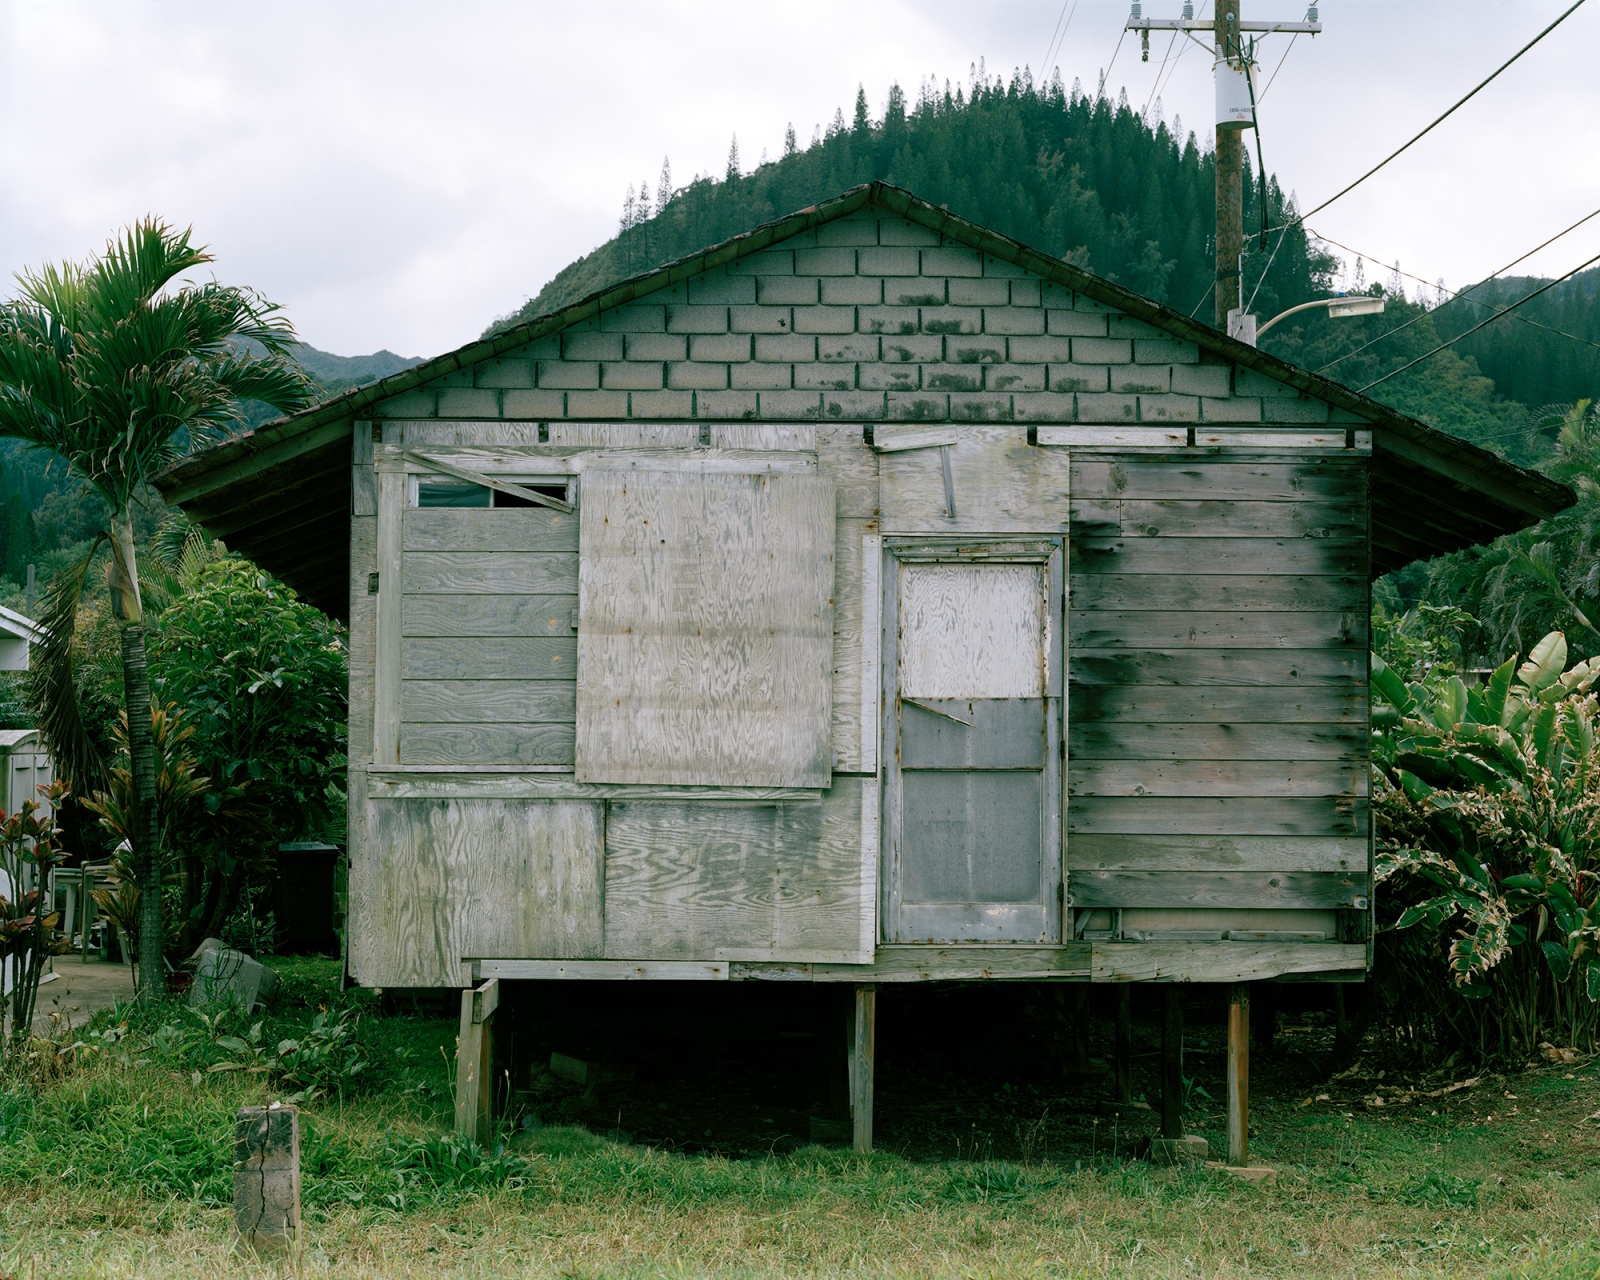 Small Wooden House (on Stilts), Hawaii 2014